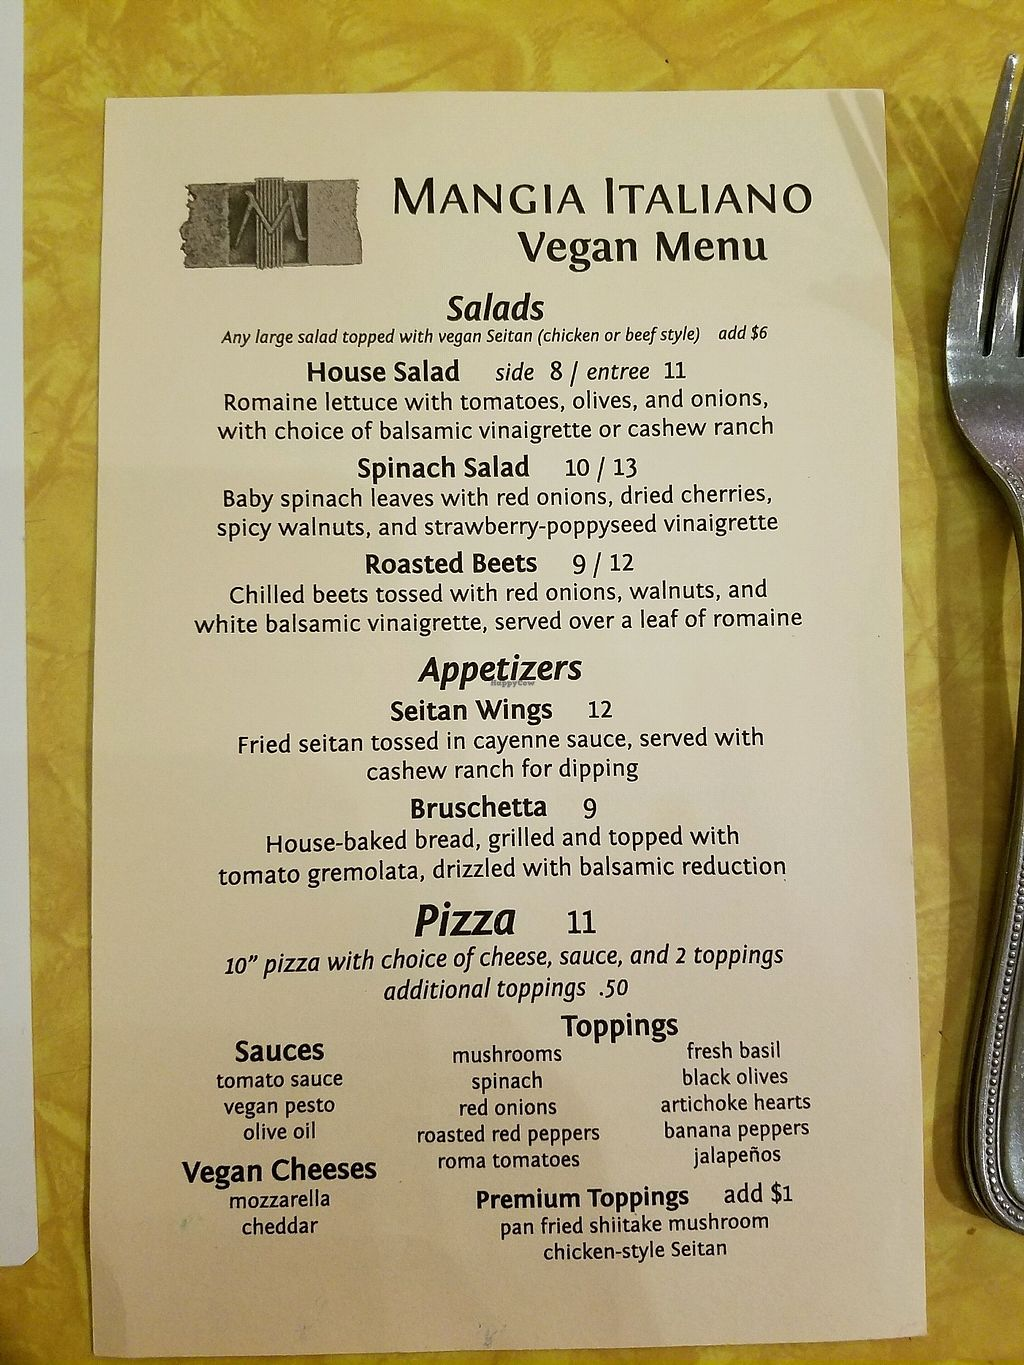 """Photo of Mangia Italiano  by <a href=""""/members/profile/madilyons"""">madilyons</a> <br/>vegan menu (pt 1) <br/> March 5, 2018  - <a href='/contact/abuse/image/111015/367228'>Report</a>"""